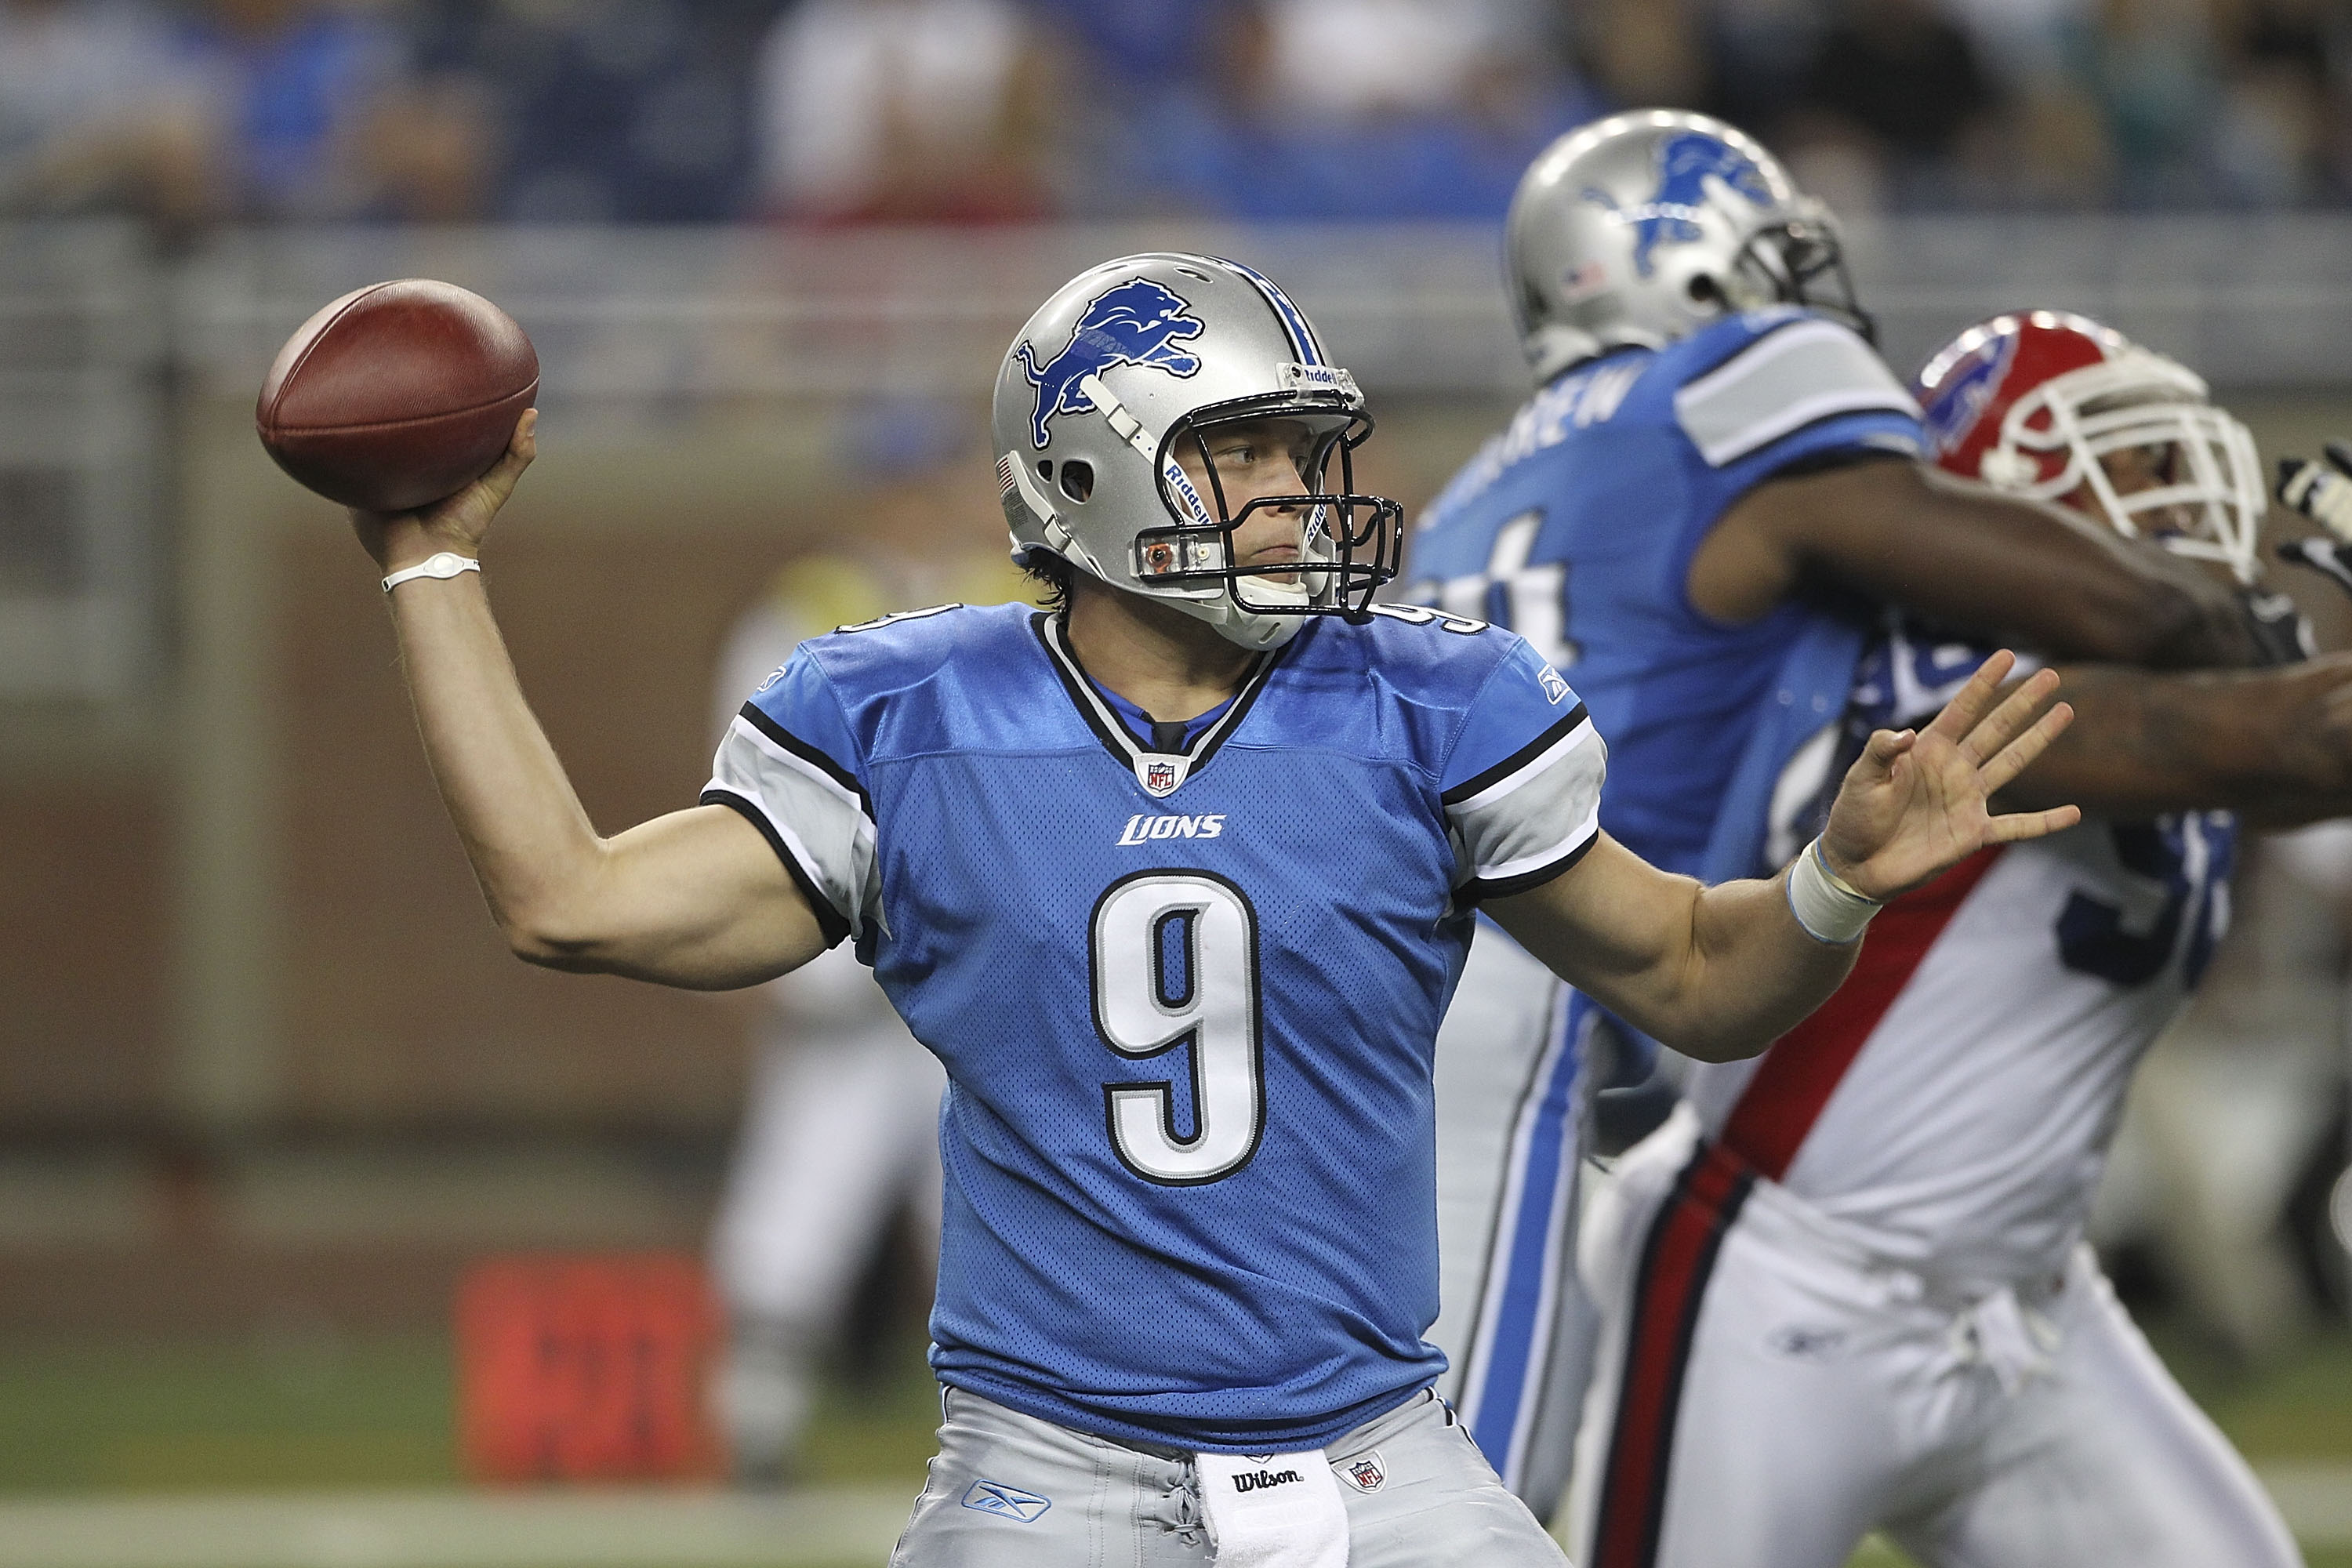 DETROIT - SEPTEMBER 02:  Matthew Stafford #9 of the Detroit Lions drops back to pass in the first quarter of the preseason game against the Buffalo Bills at Ford Field on September 2, 2010 in Detroit, Michigan.  (Photo by Leon Halip/Getty Images)